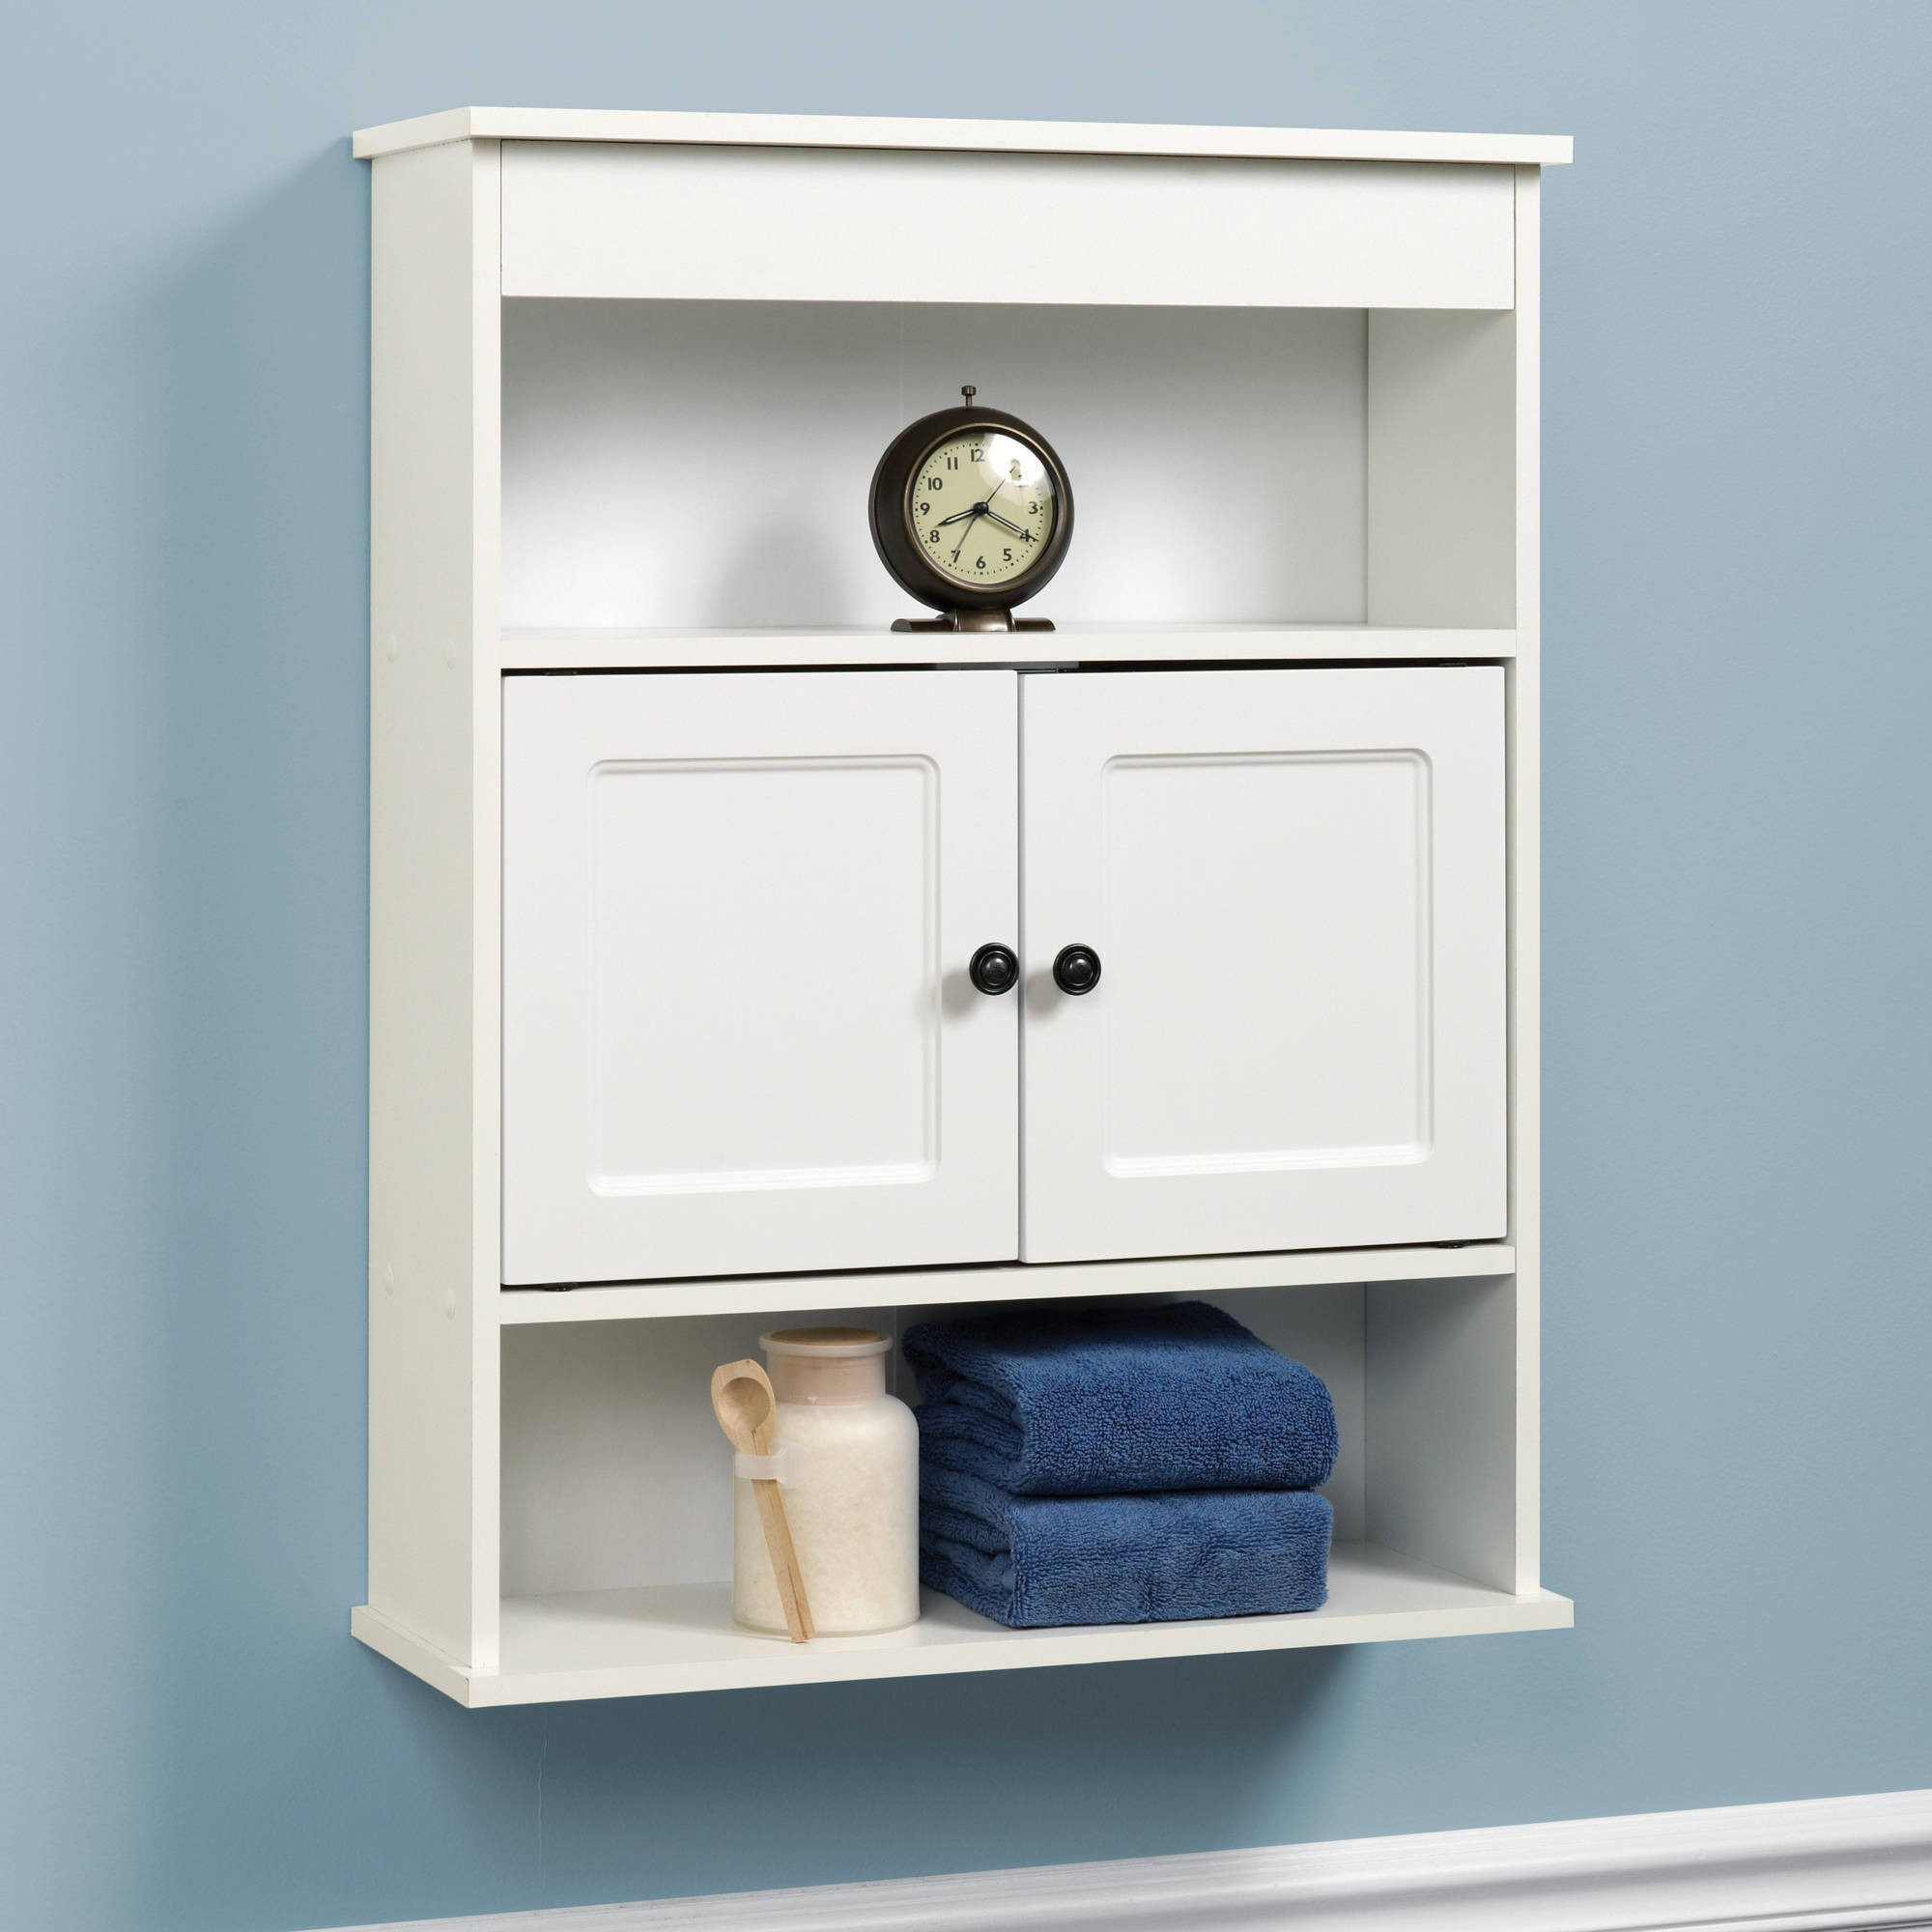 Bathroom Storage Cabinets Luxury Chapter Bathroom Wall Cabinet White Walmart Picture